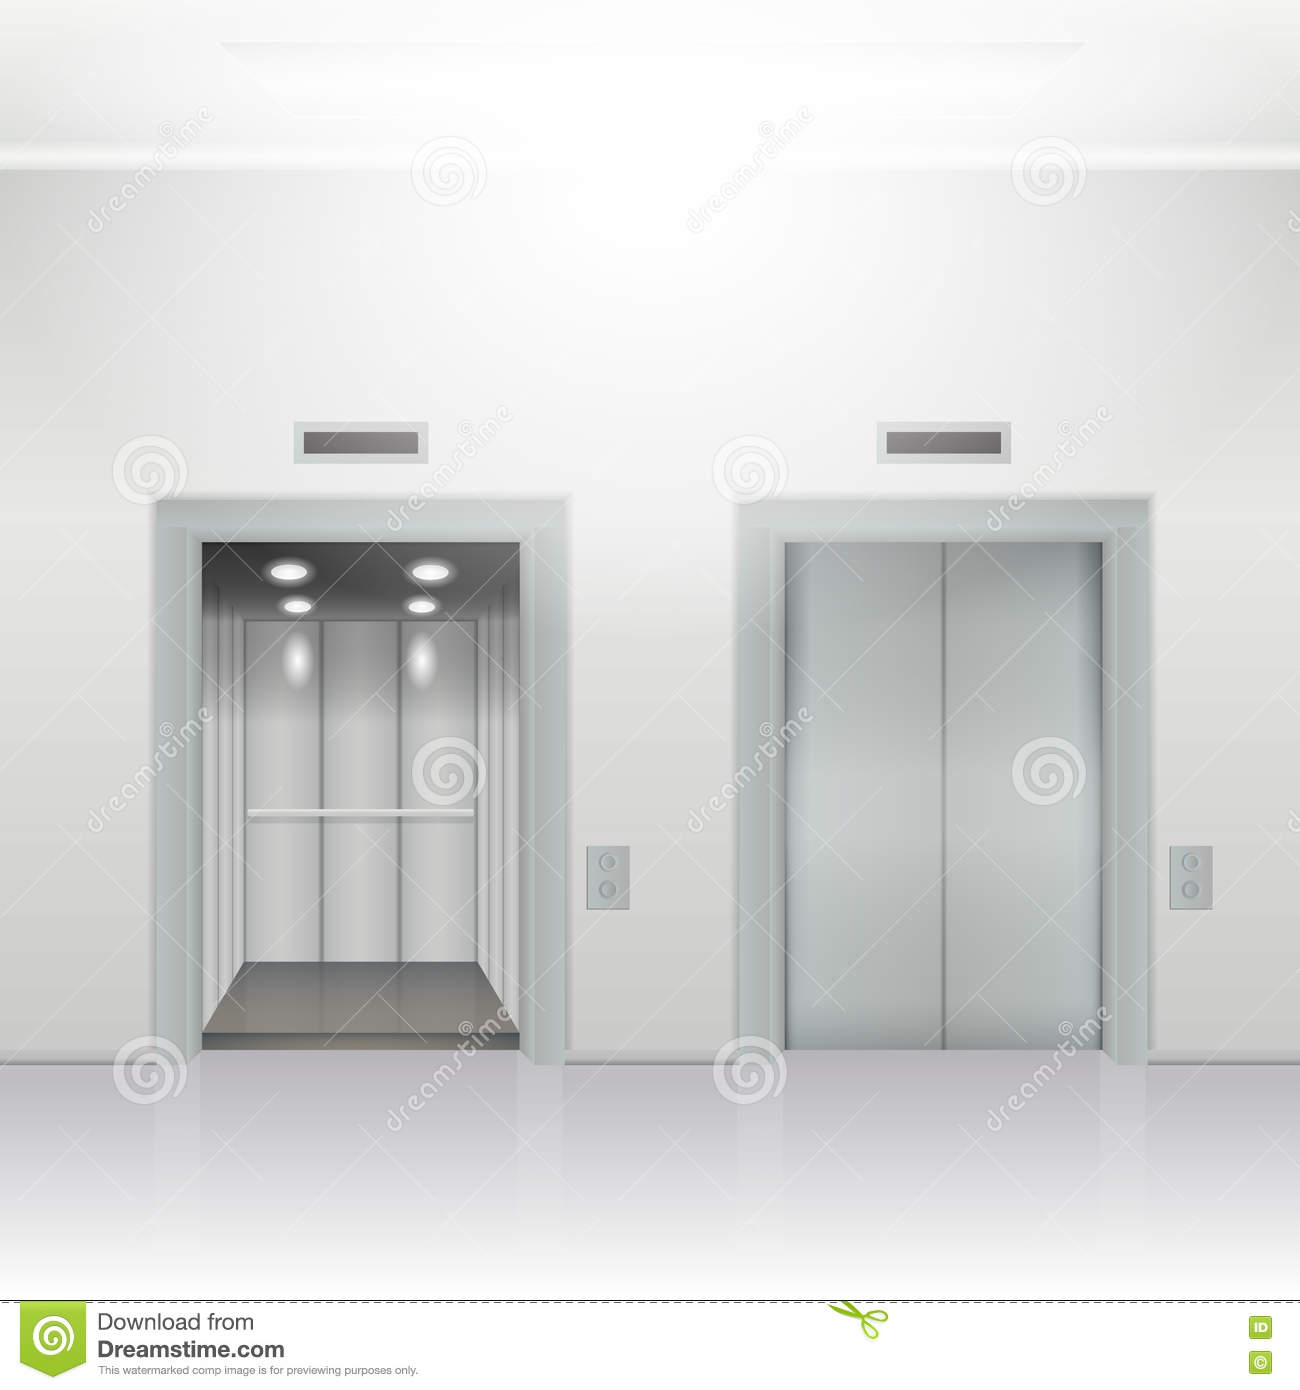 Open And Close Elevator Stock Illustration - Image: 69707764